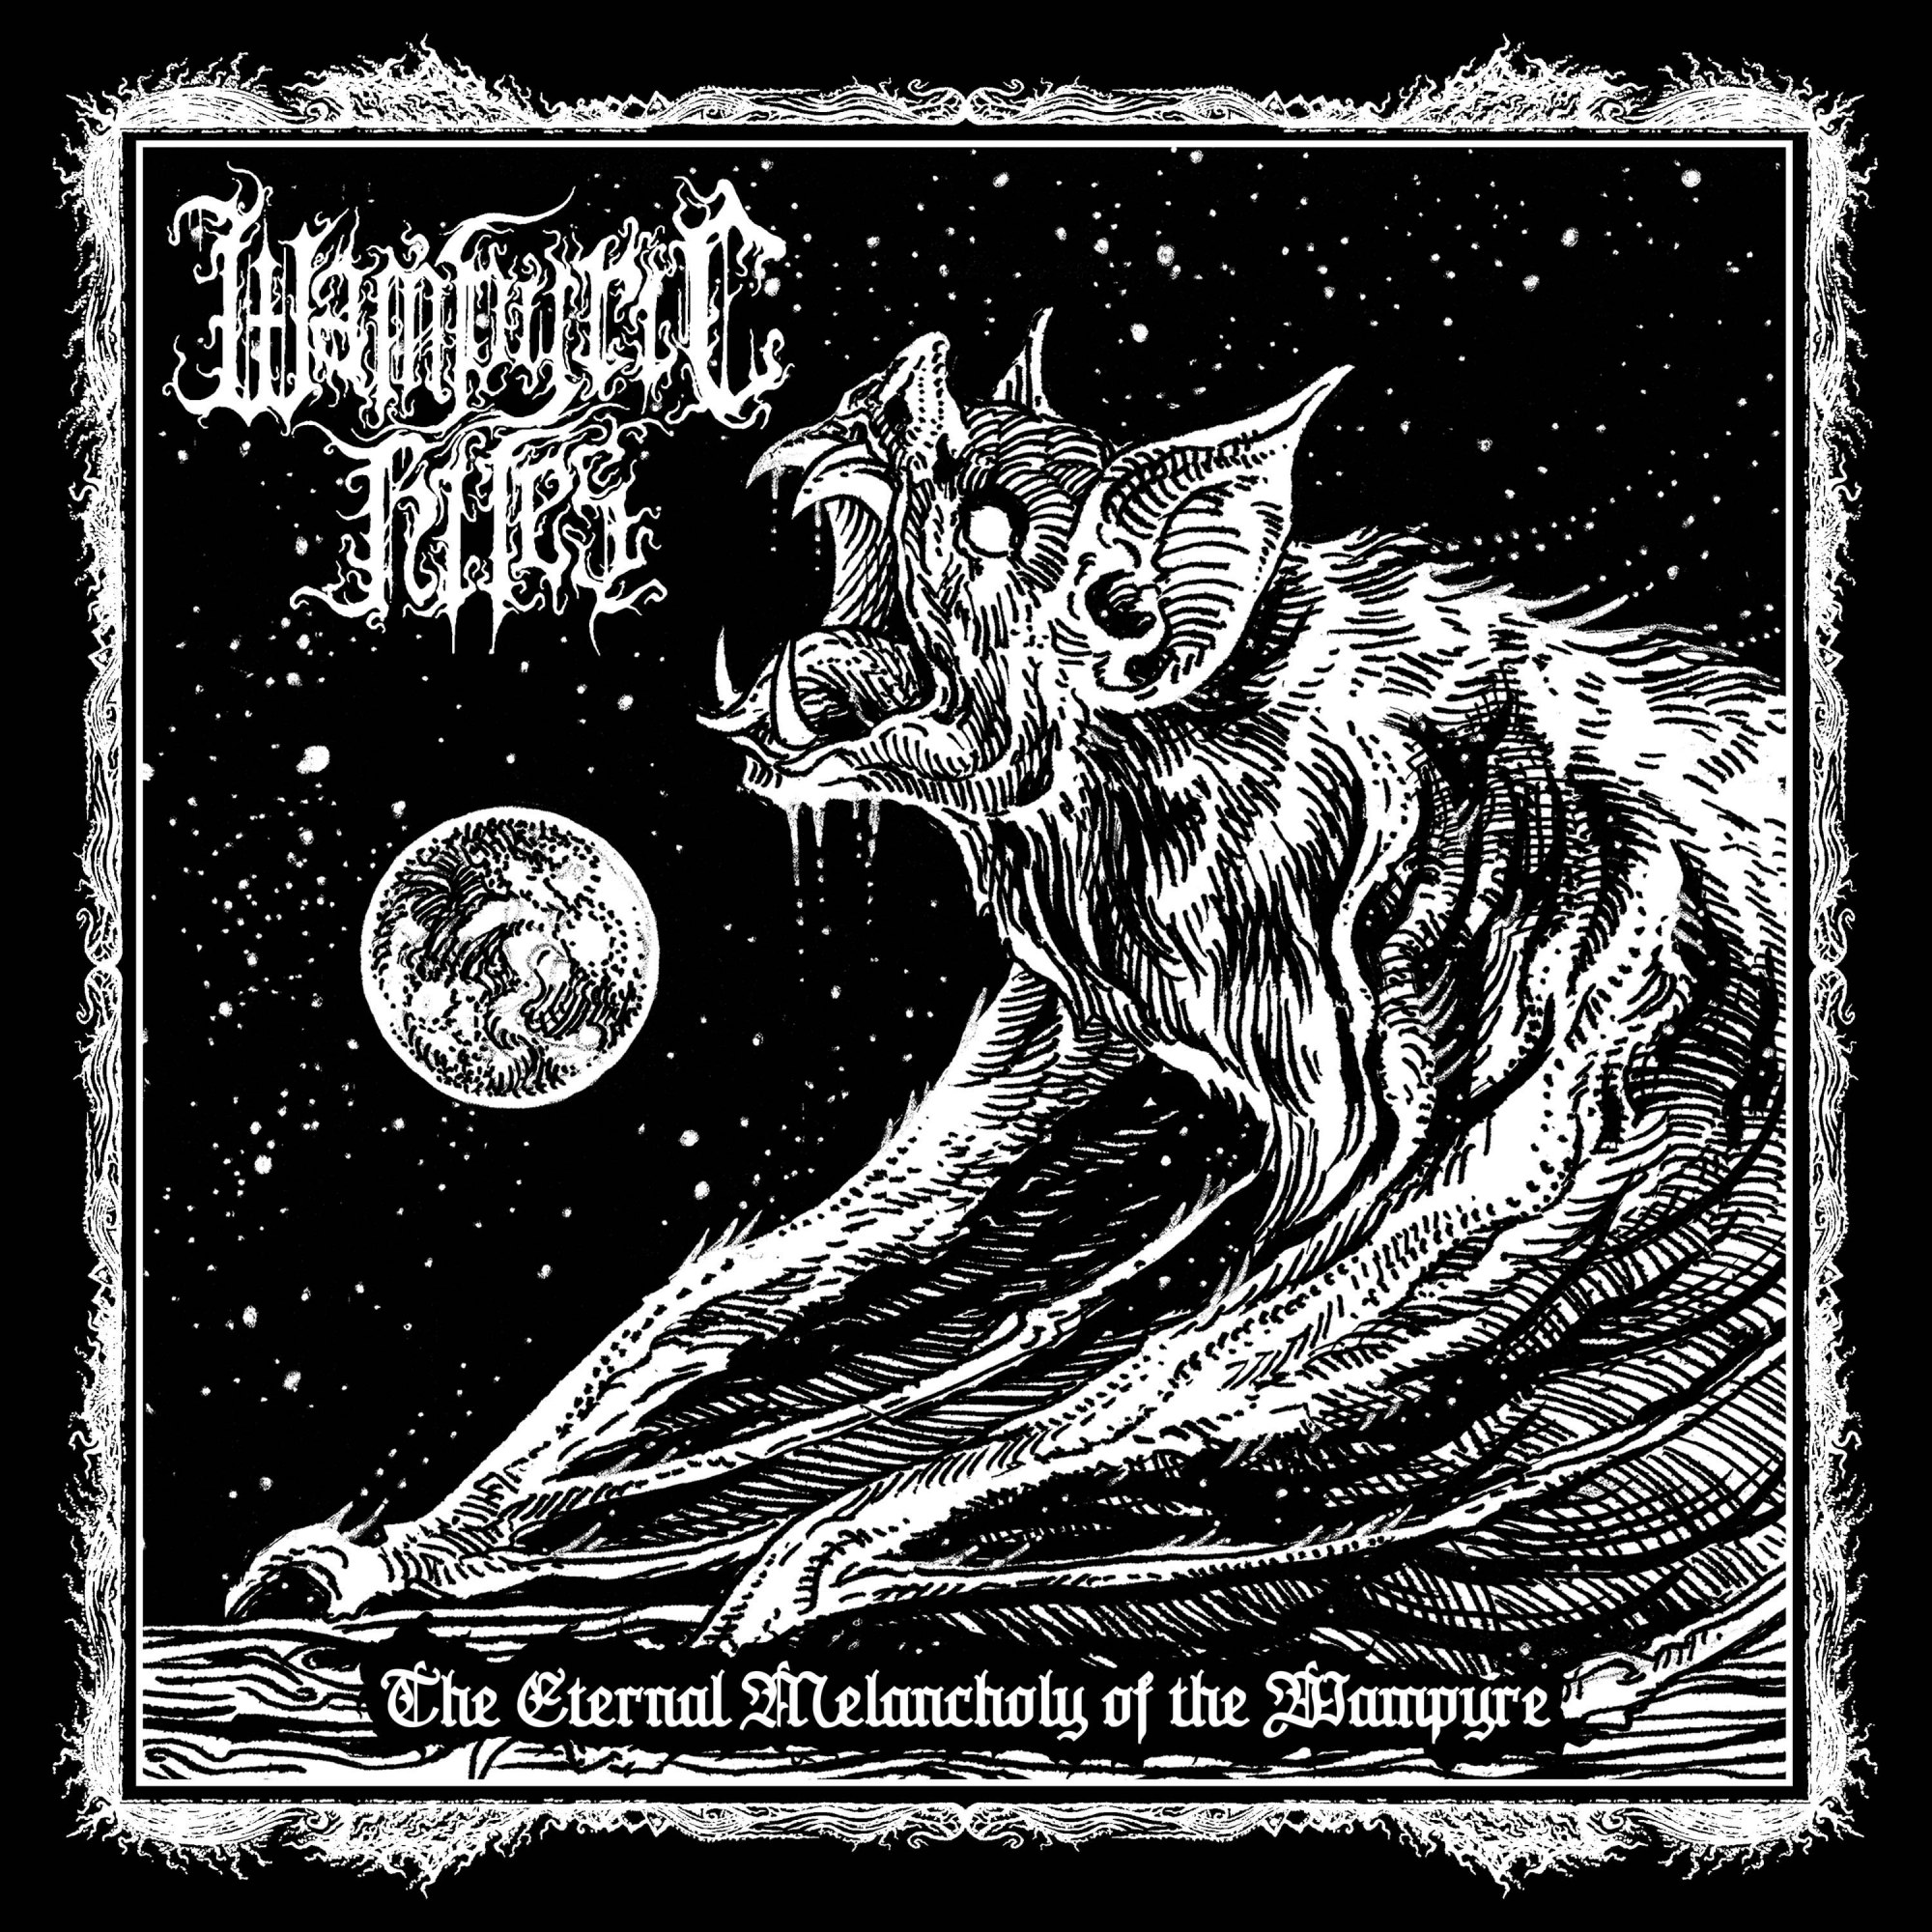 Review for Wampyric Rites - The Eternal Melancholy of the Wampyre